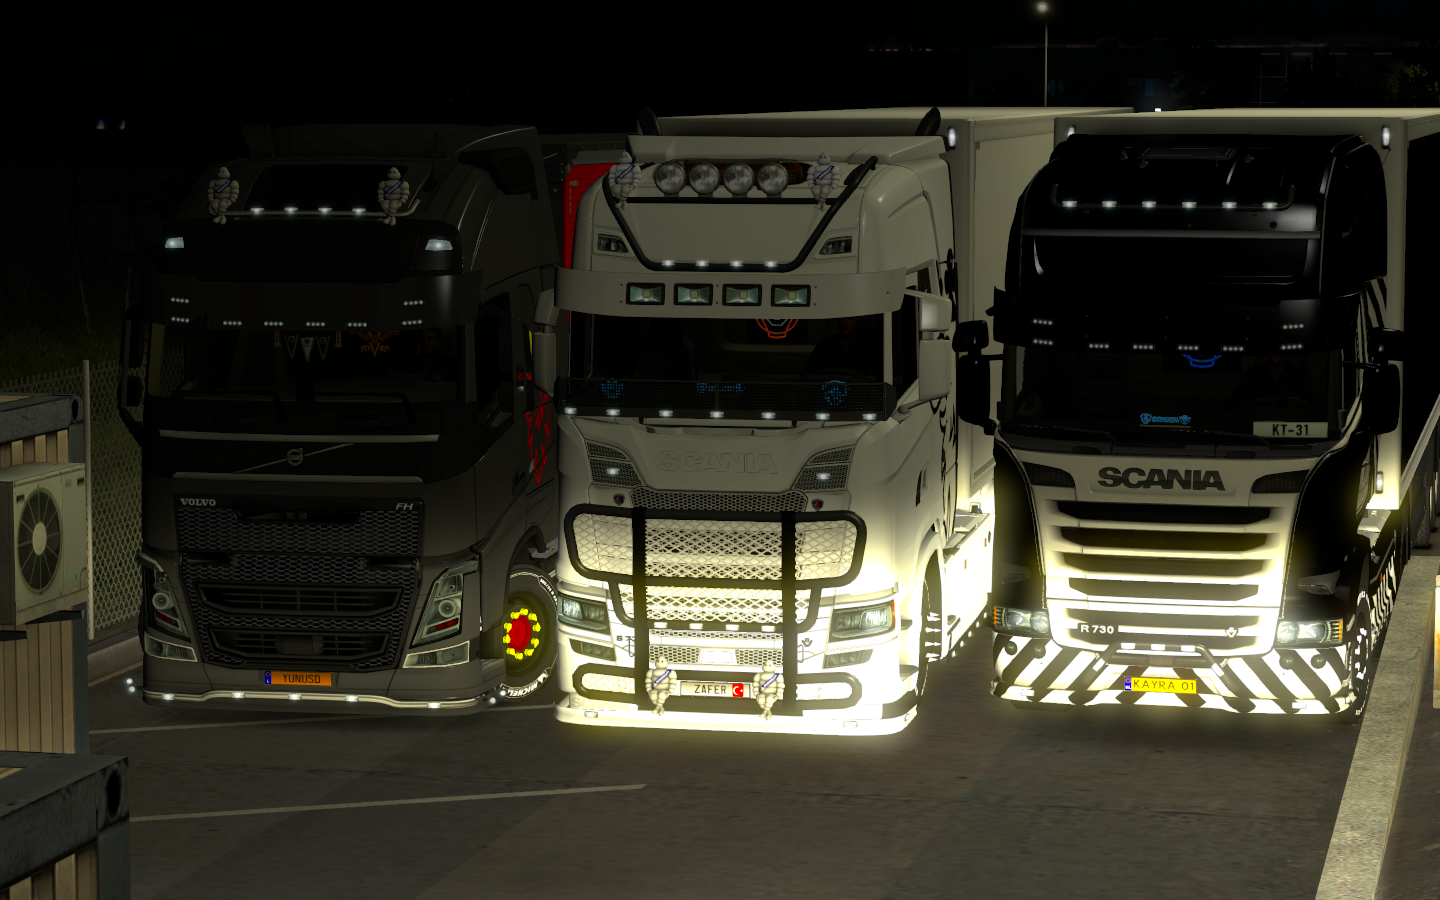 ets2_20190317_141736_00.png